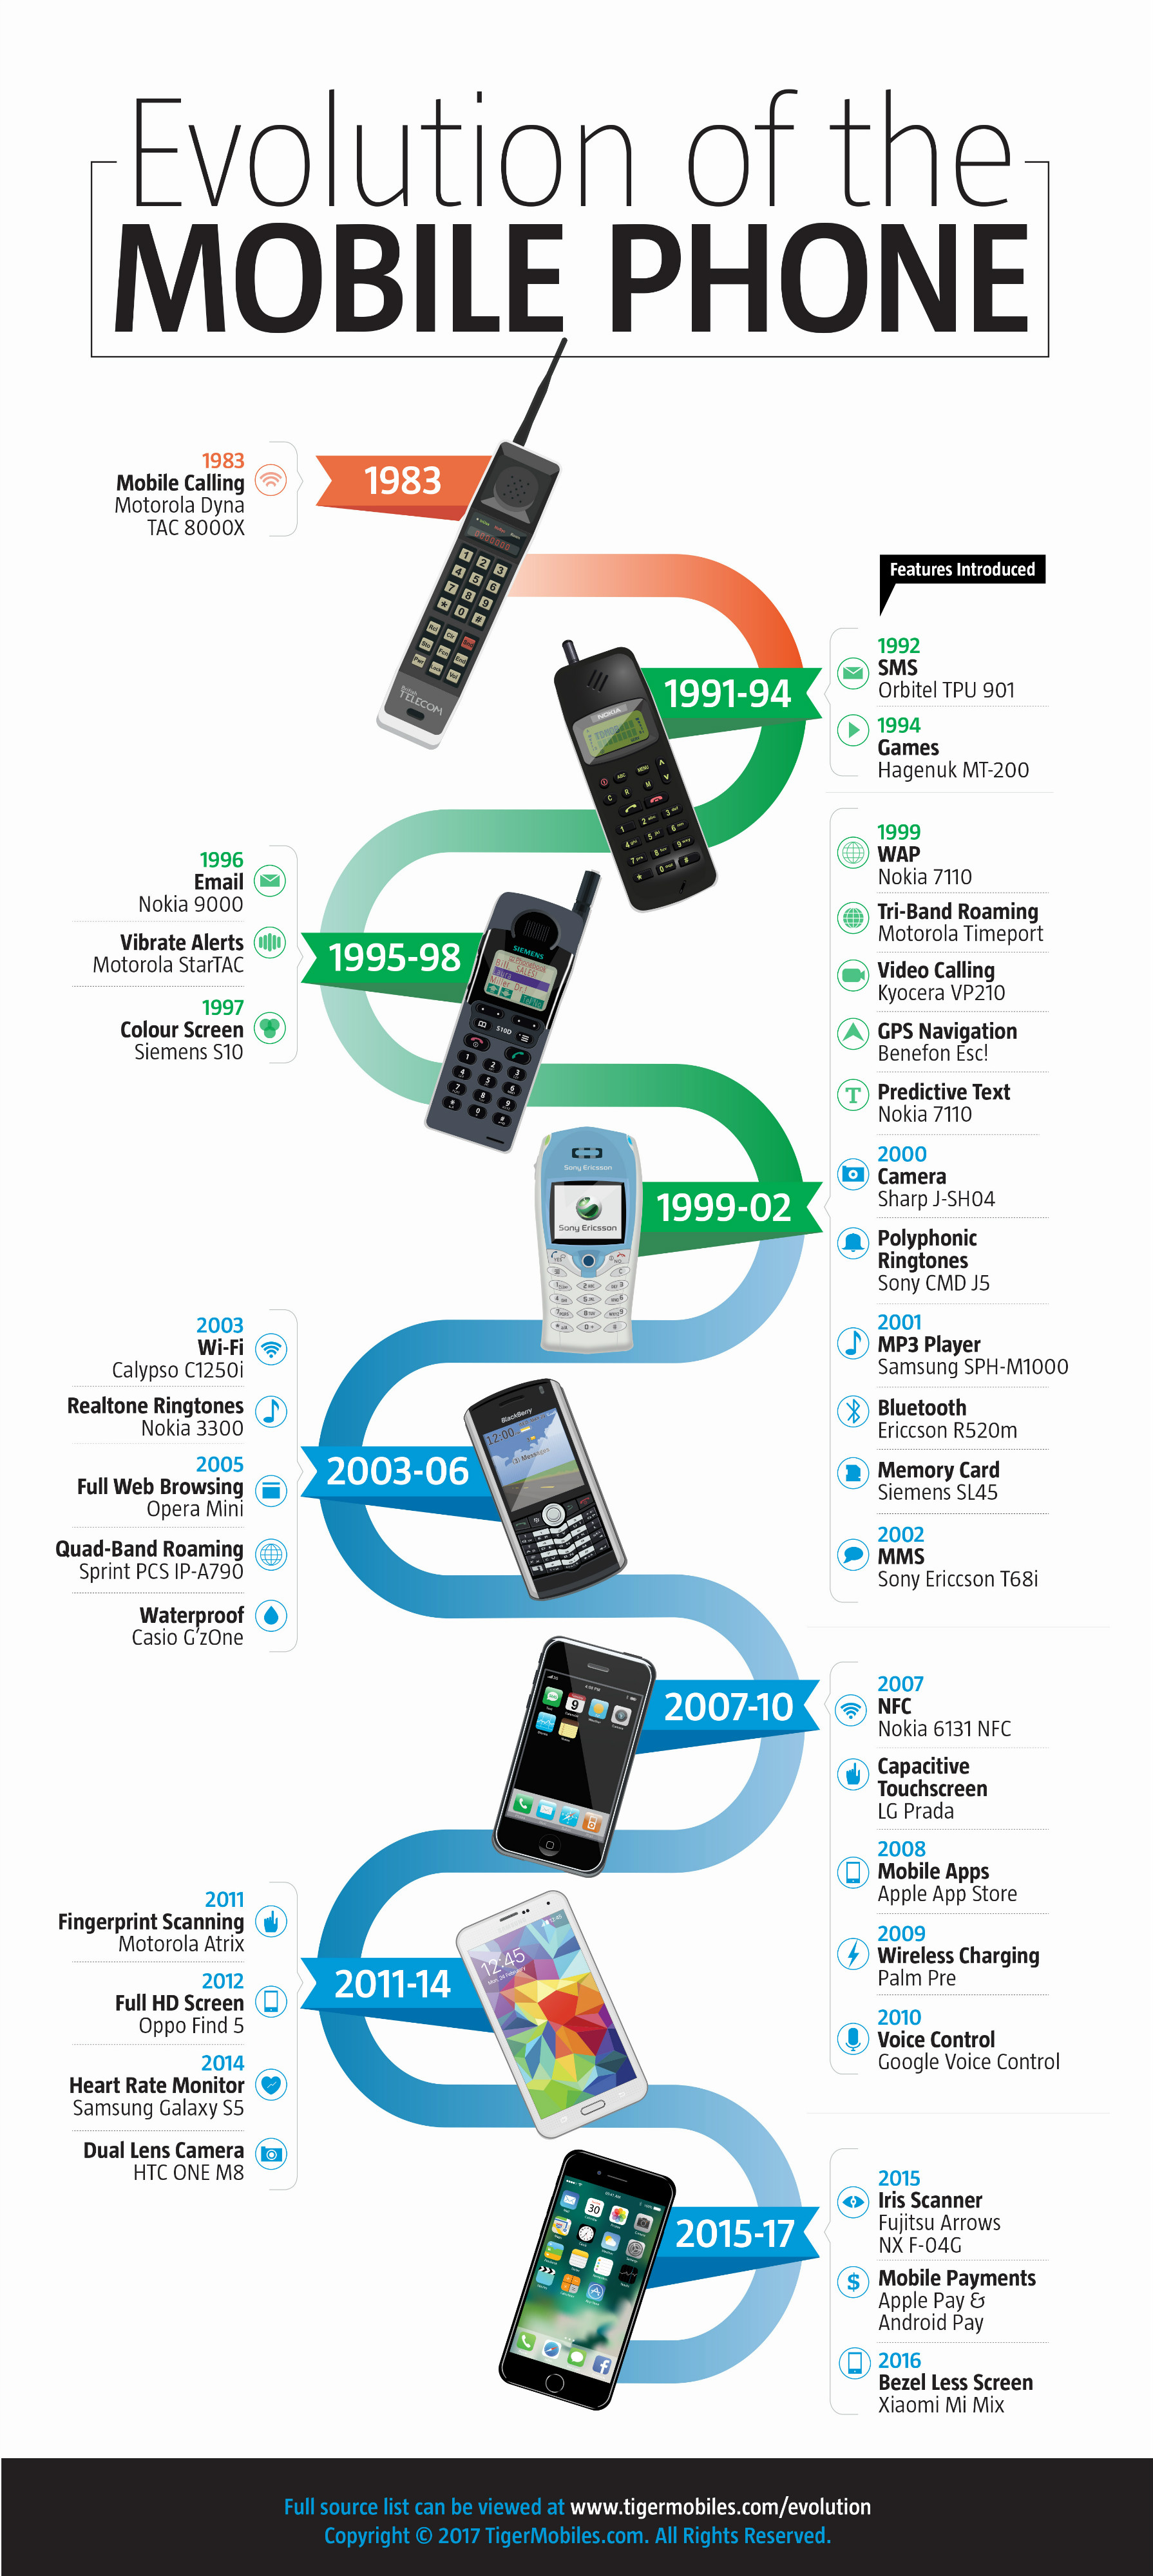 Timeline of new smartphone features